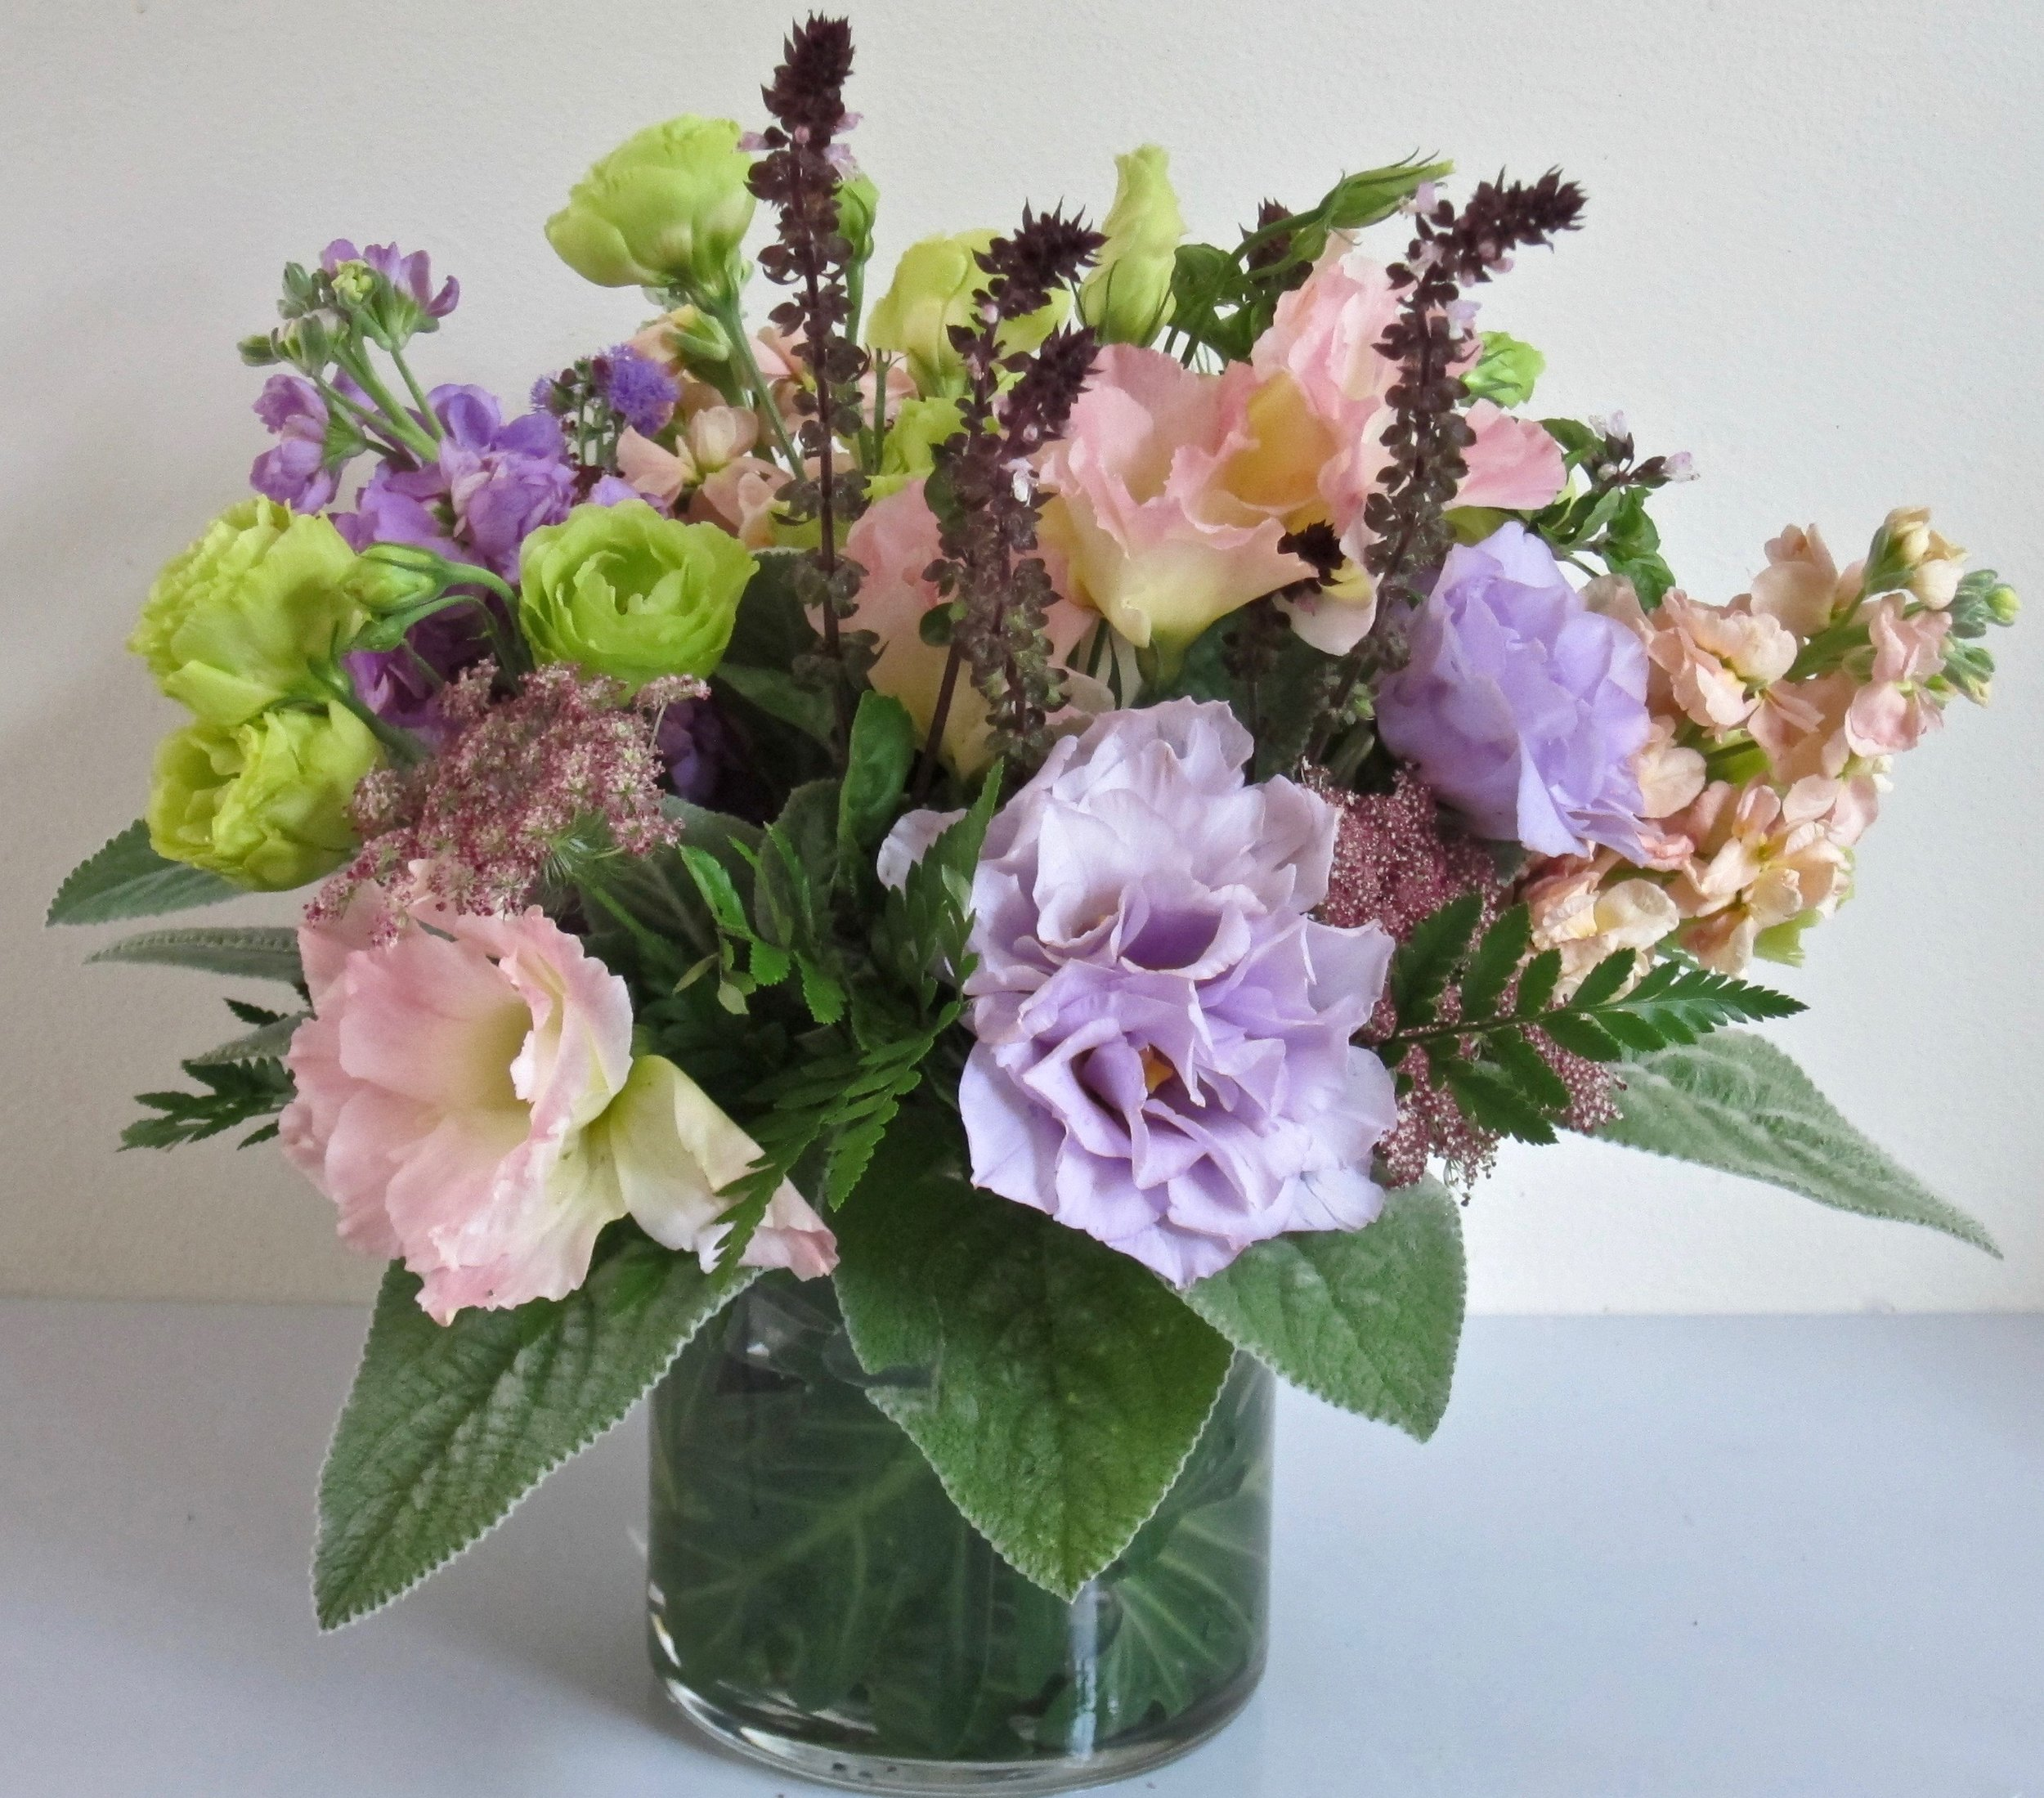 LISIANTHUS,     cinnamon basil, lambs ear and other accents   in a leaf-lined or clear vase, $55.